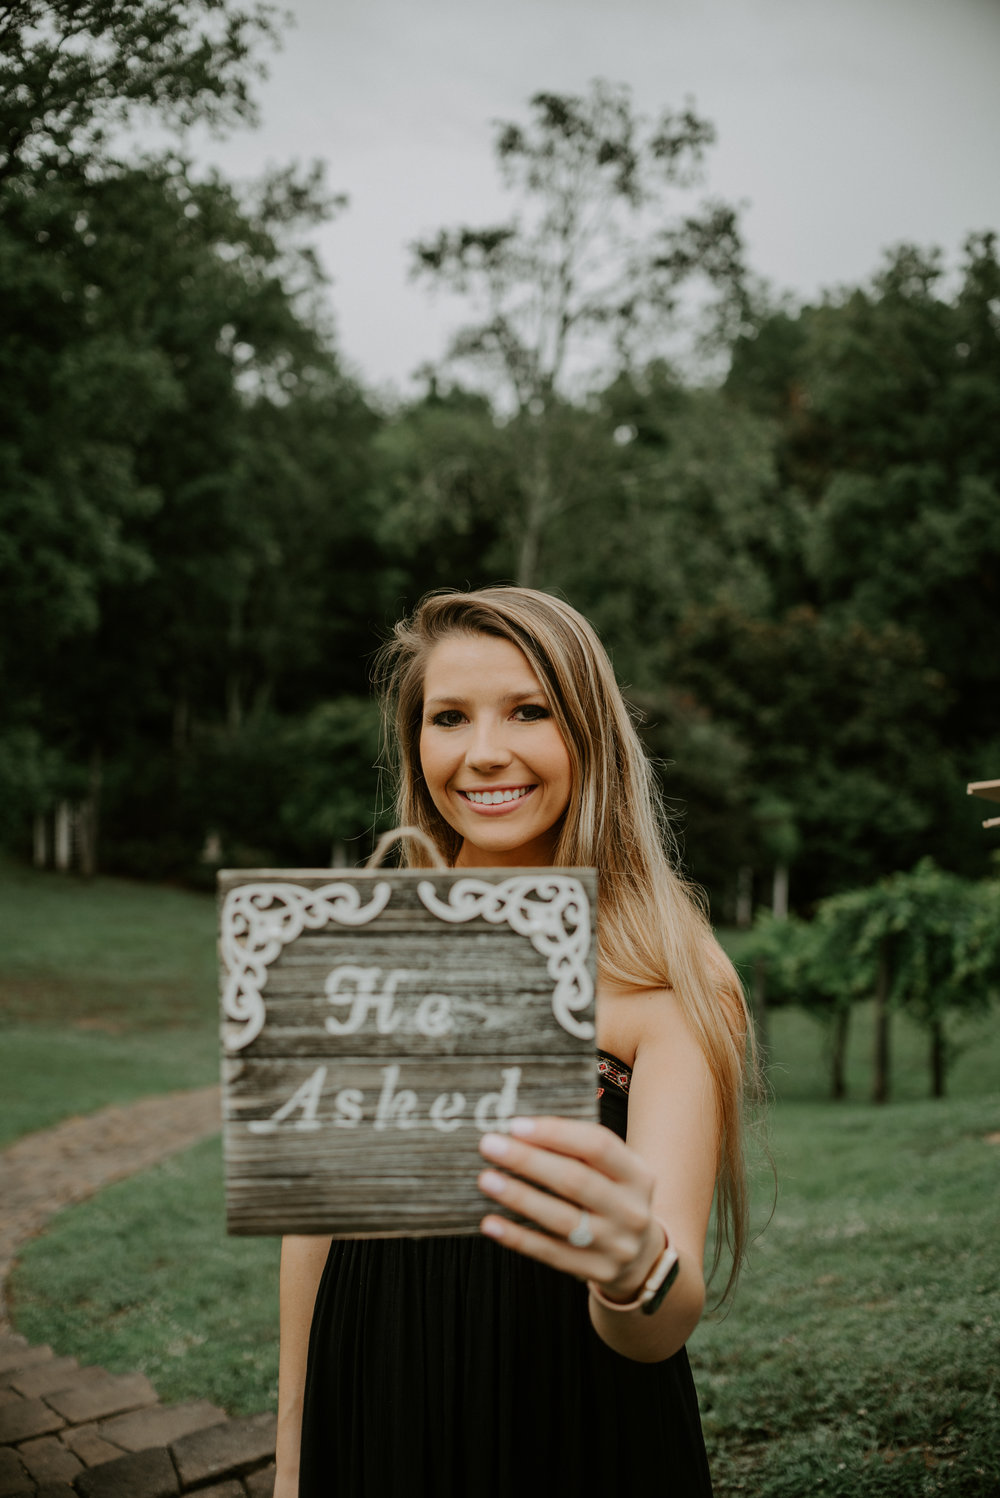 WonderlyCreative_Proposal_6.23.18_Makenzie&Carson_-89.jpg